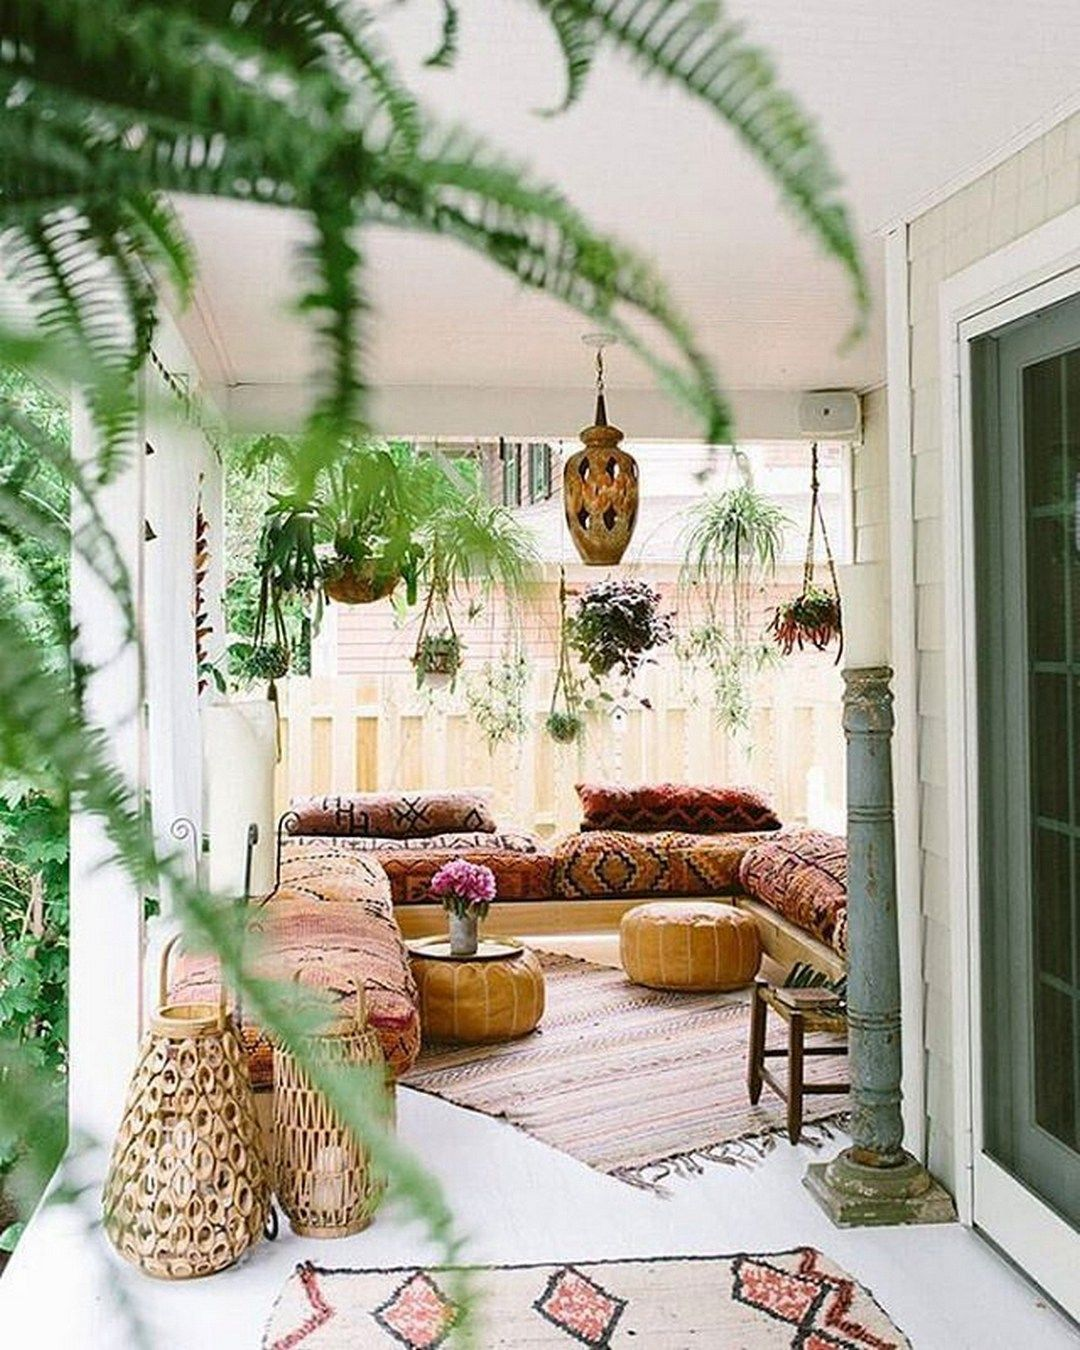 ideas bohemian style boho interior bedroom room decorating chic decor living